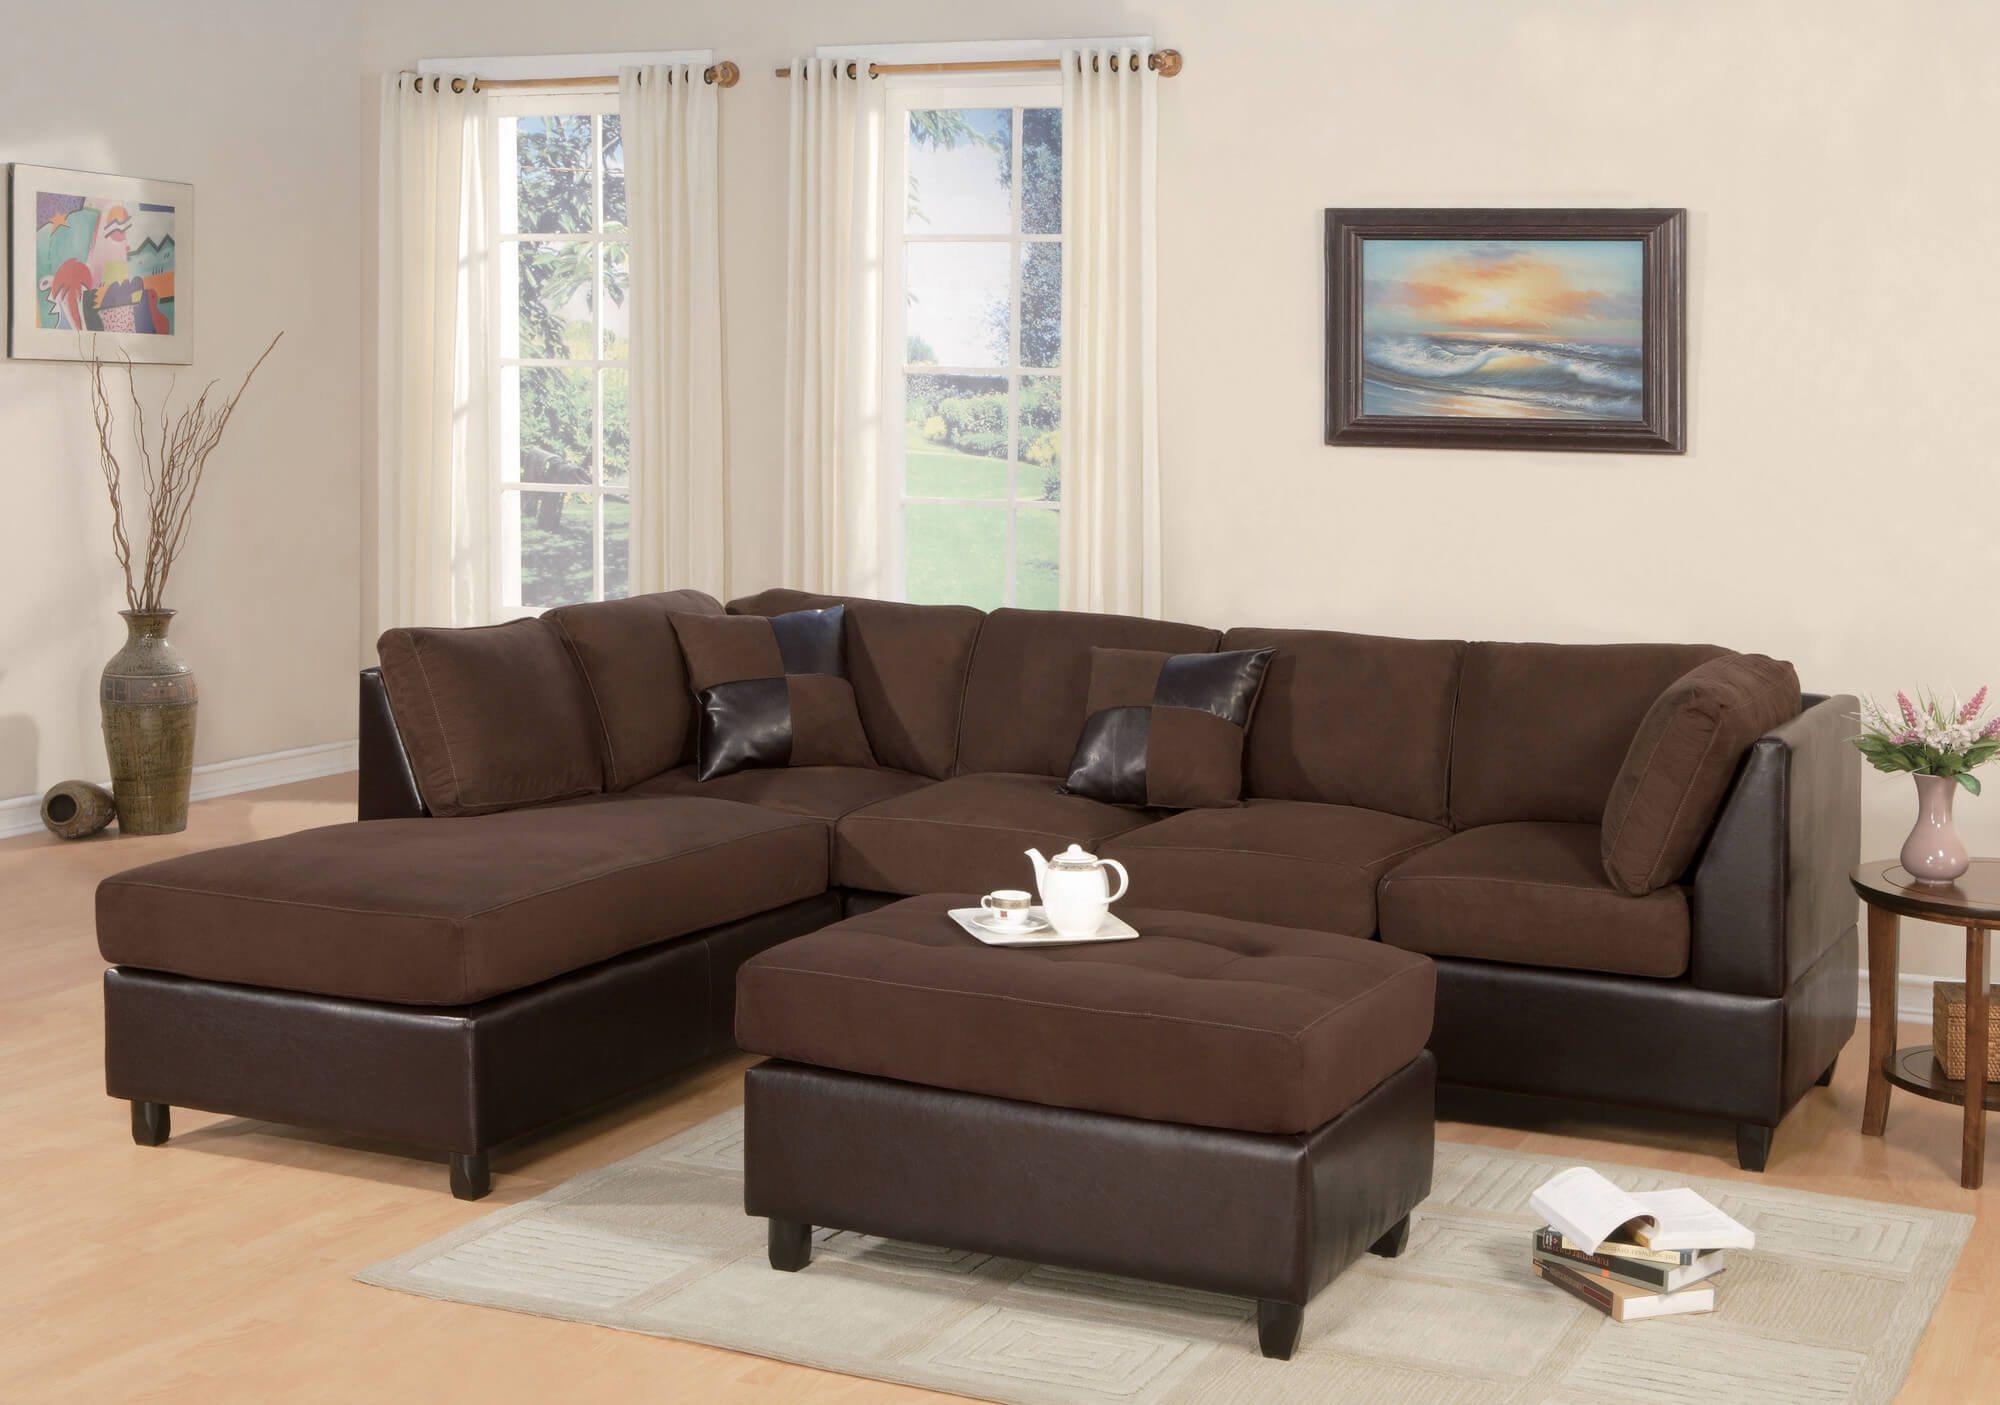 15 Collection of Big Lots Sofa Bed   Sofa Ideas